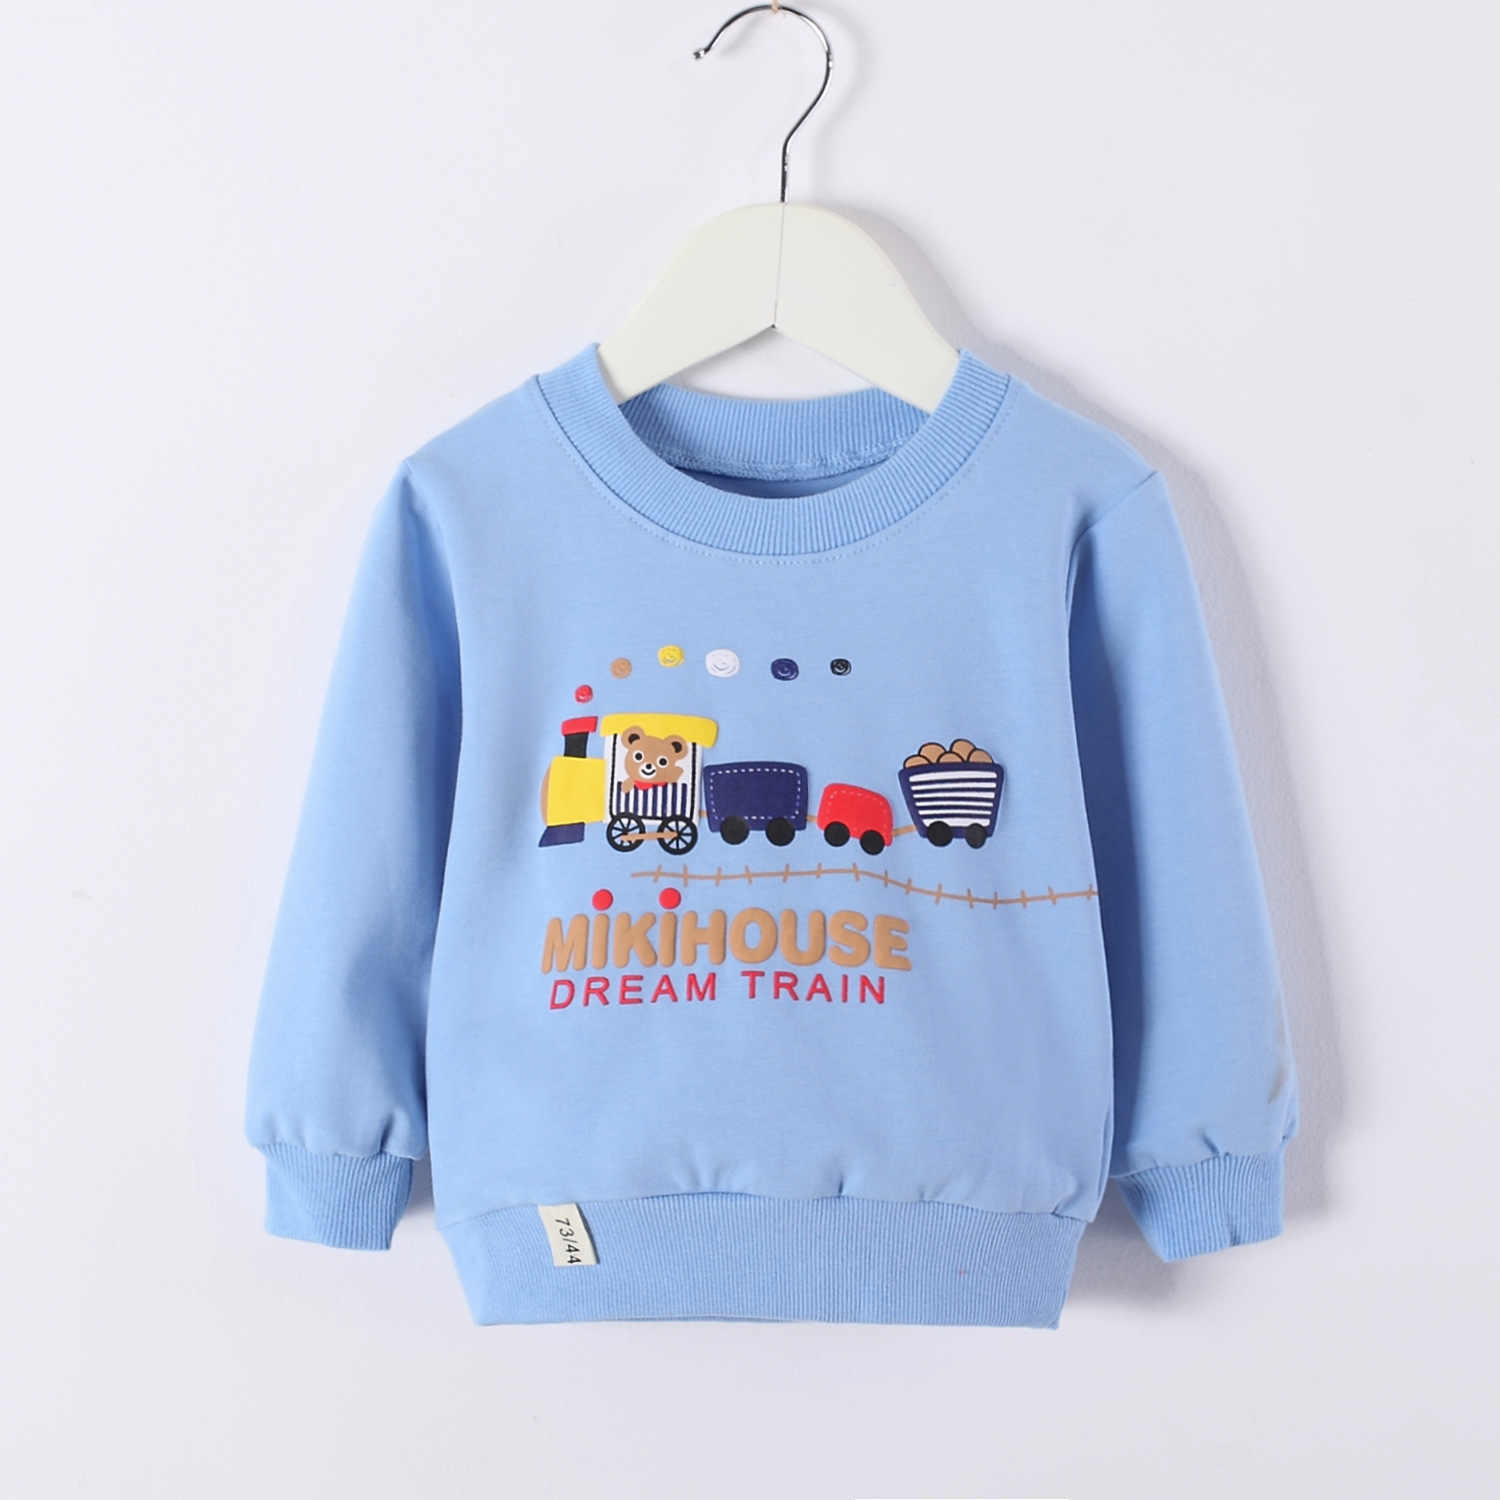 Toddler Boys Girls Blue Hoodies Unisex Cartoon Train Sweatshirts Clothes Newborn Tracksuit Size 1 2 3 Year Kids Baby Clothing